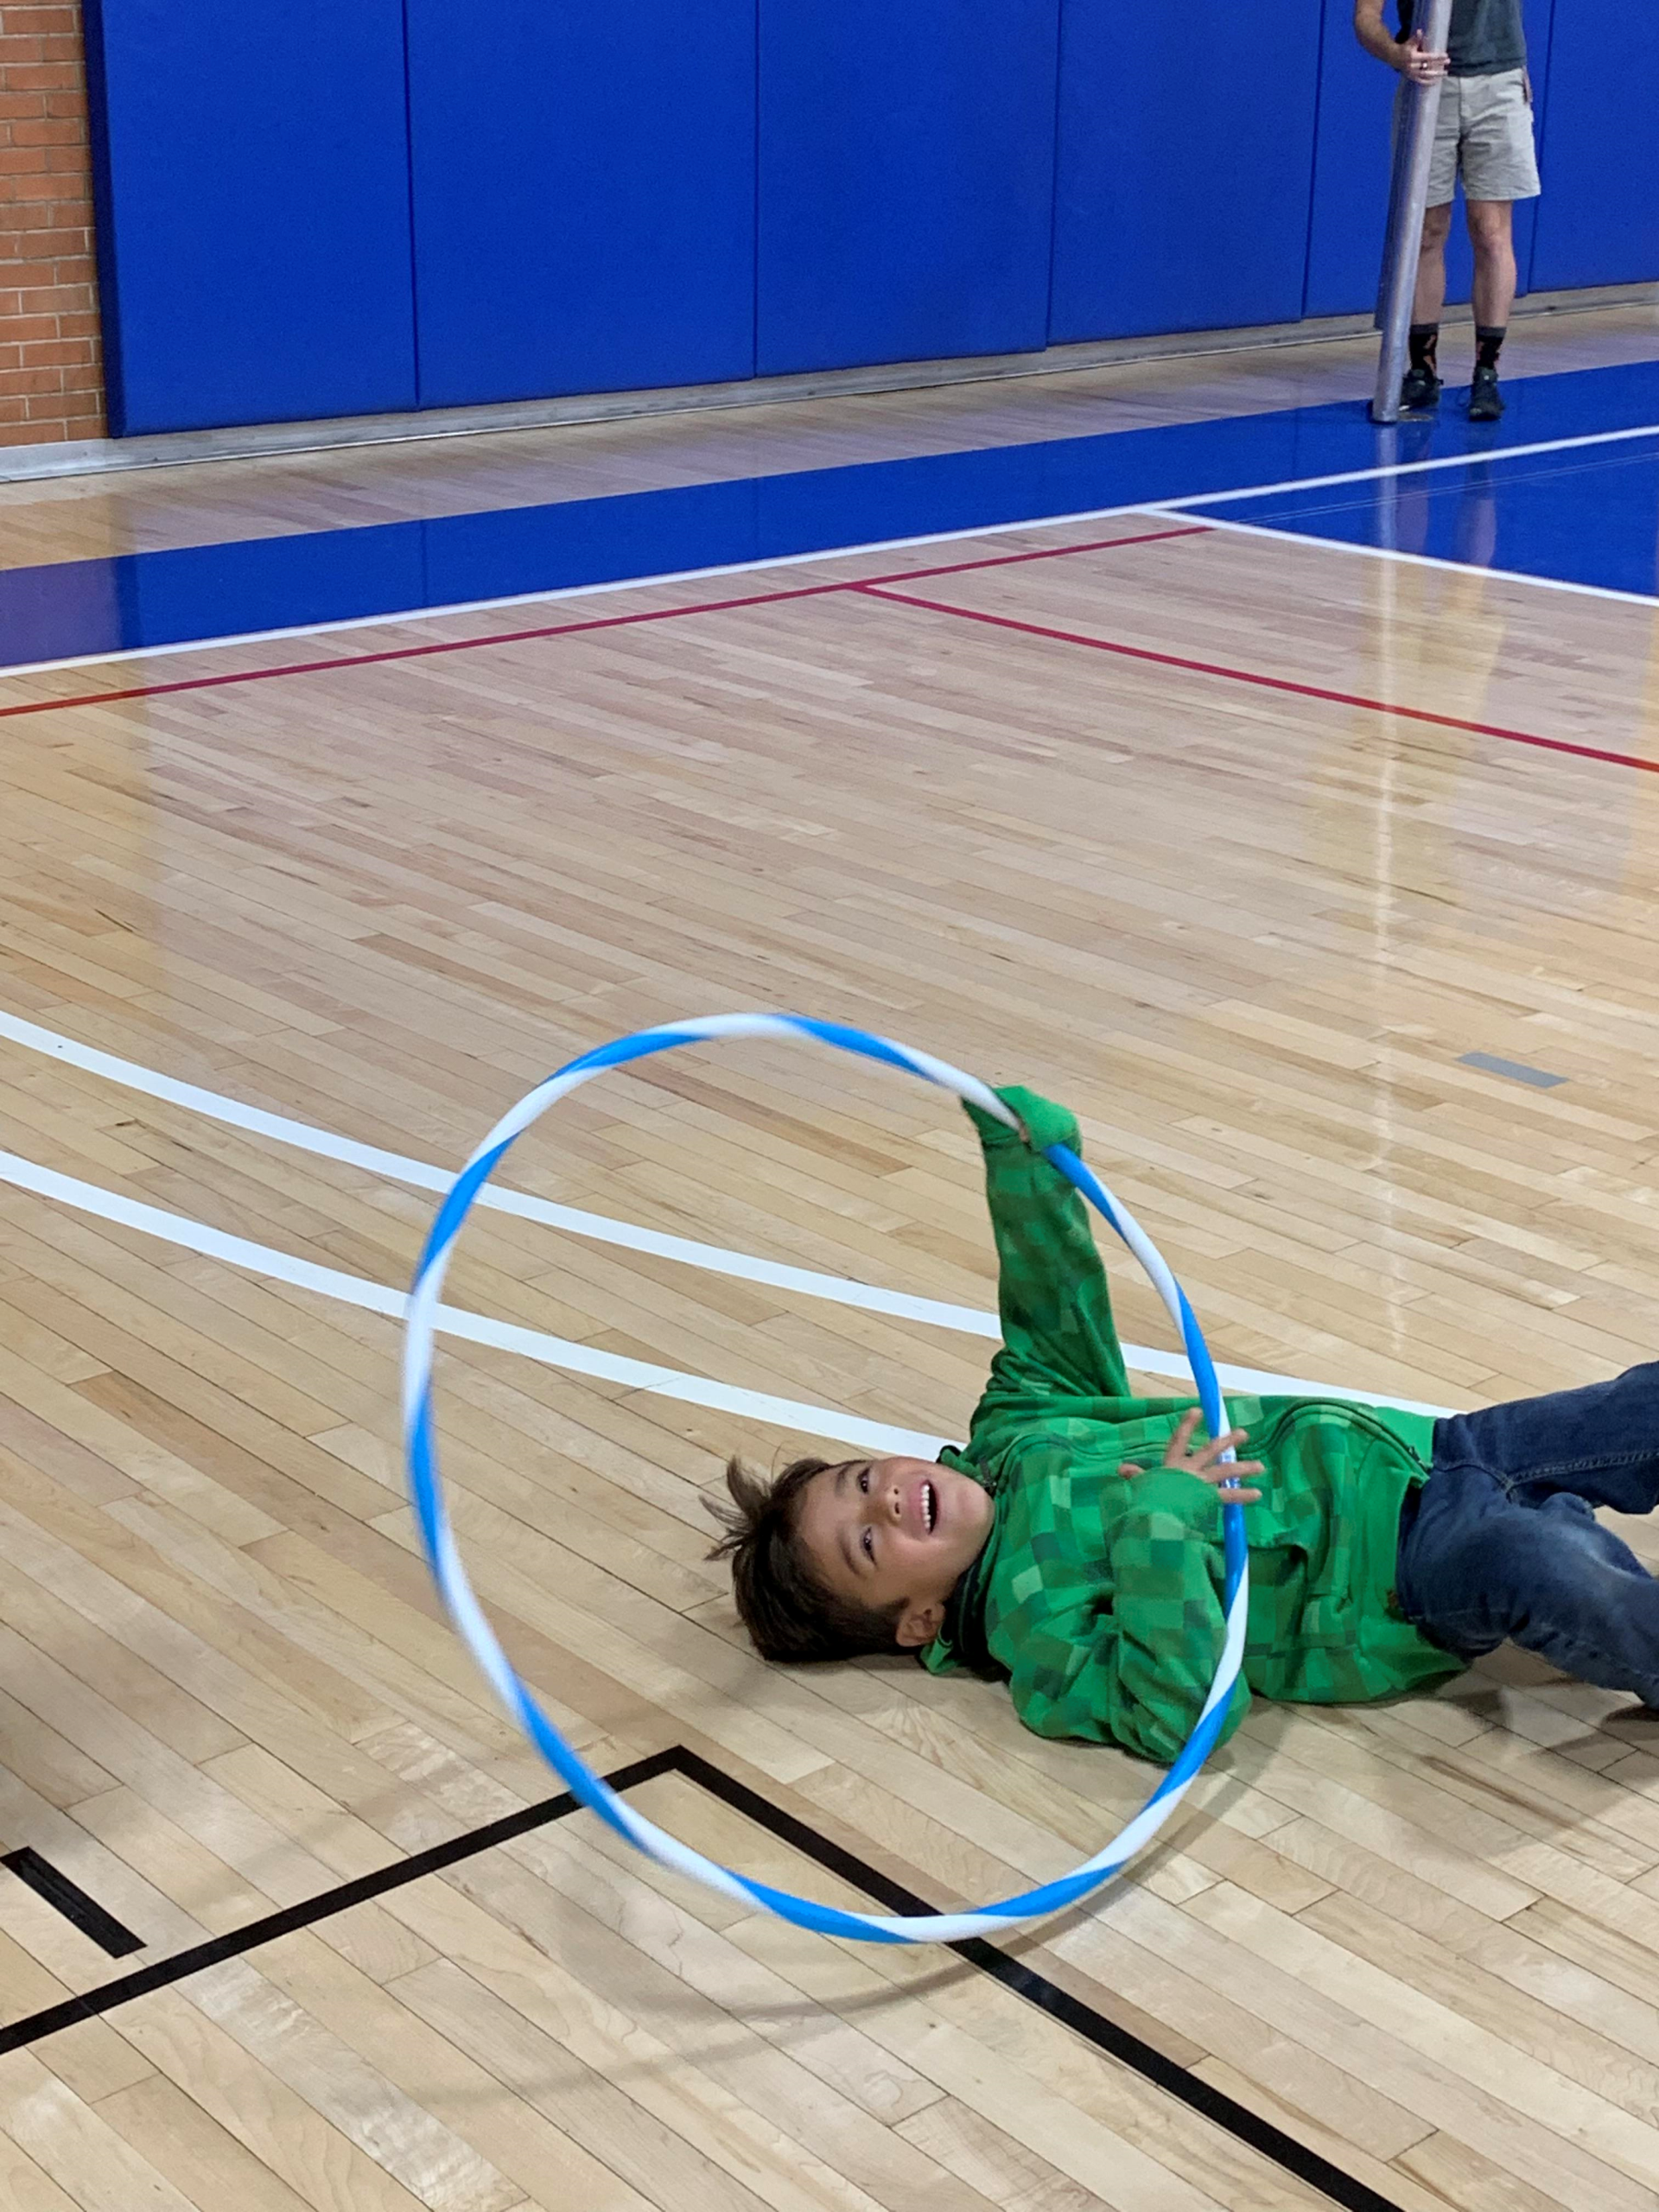 Eagles Community Center Gym Hula Hoop